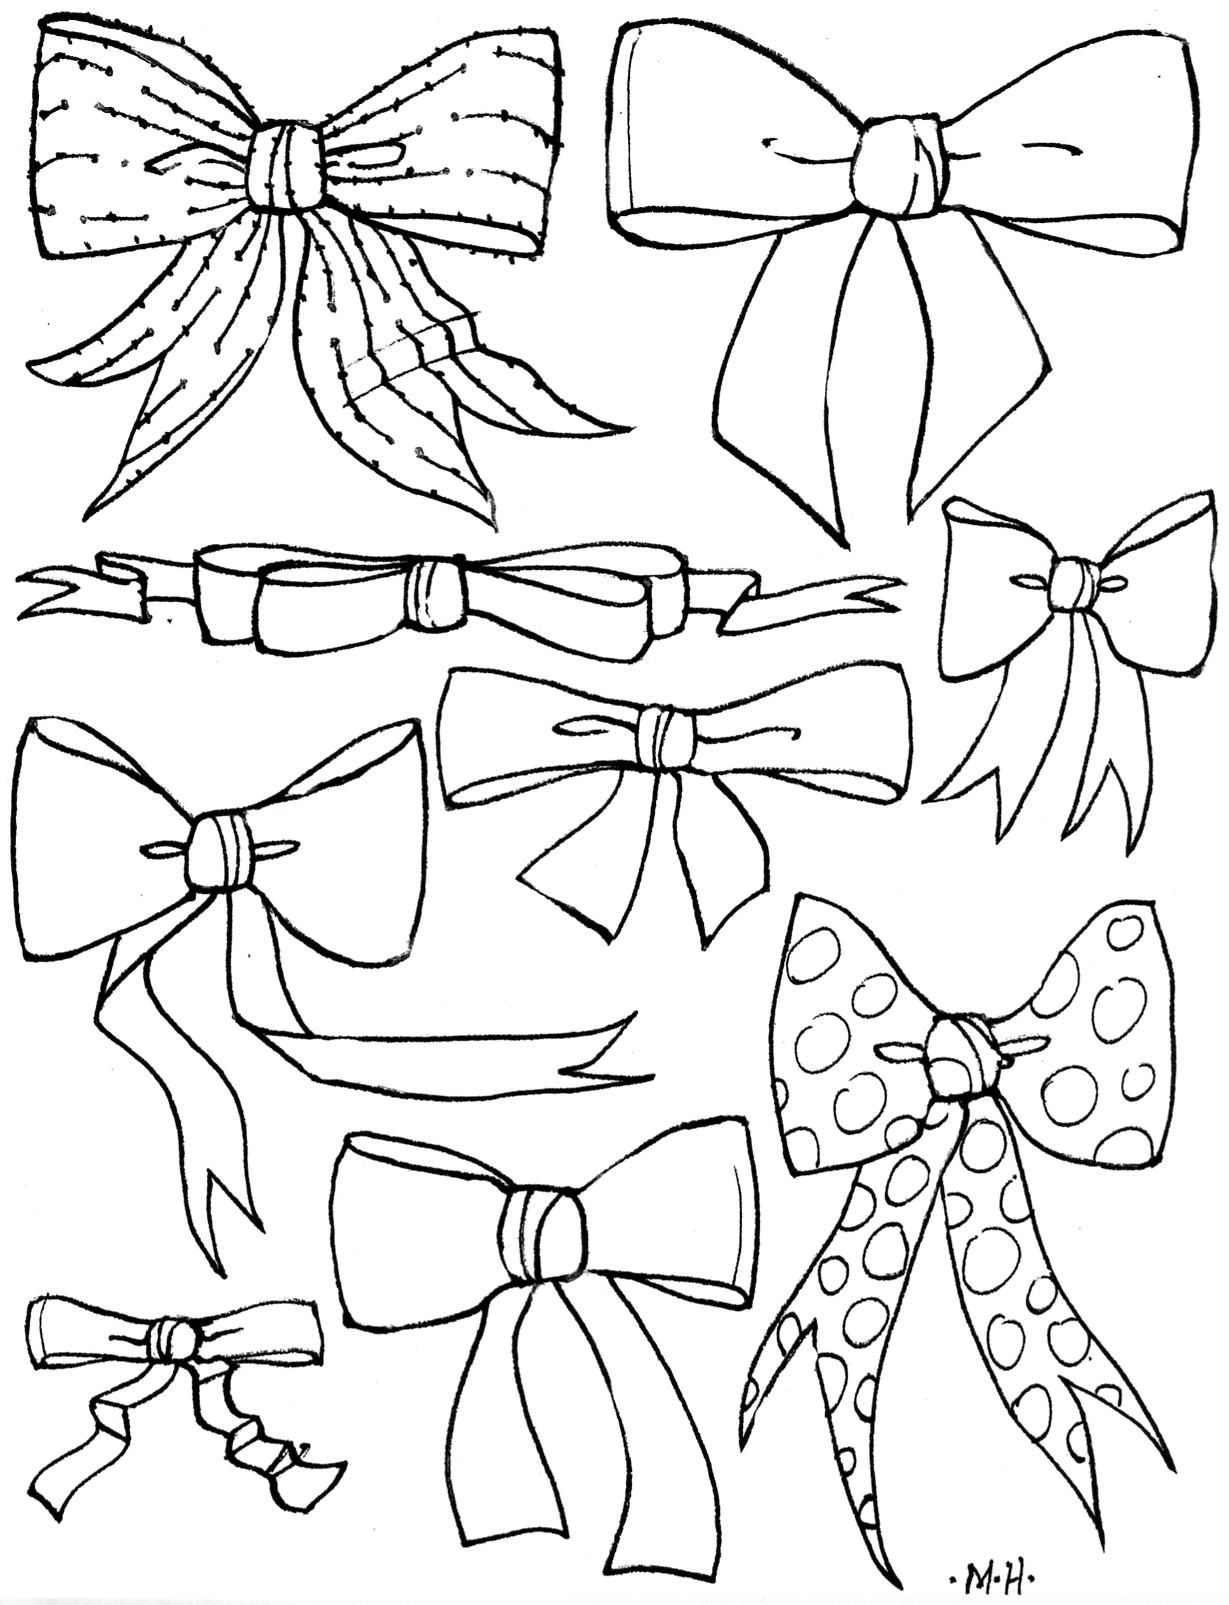 Hair Bow Color Page Another Found Here Http Www Shirleysmithduke Com Images Bowscoloring2 Pdf Pattern Coloring Pages Coloring Pages Embroidery Patterns